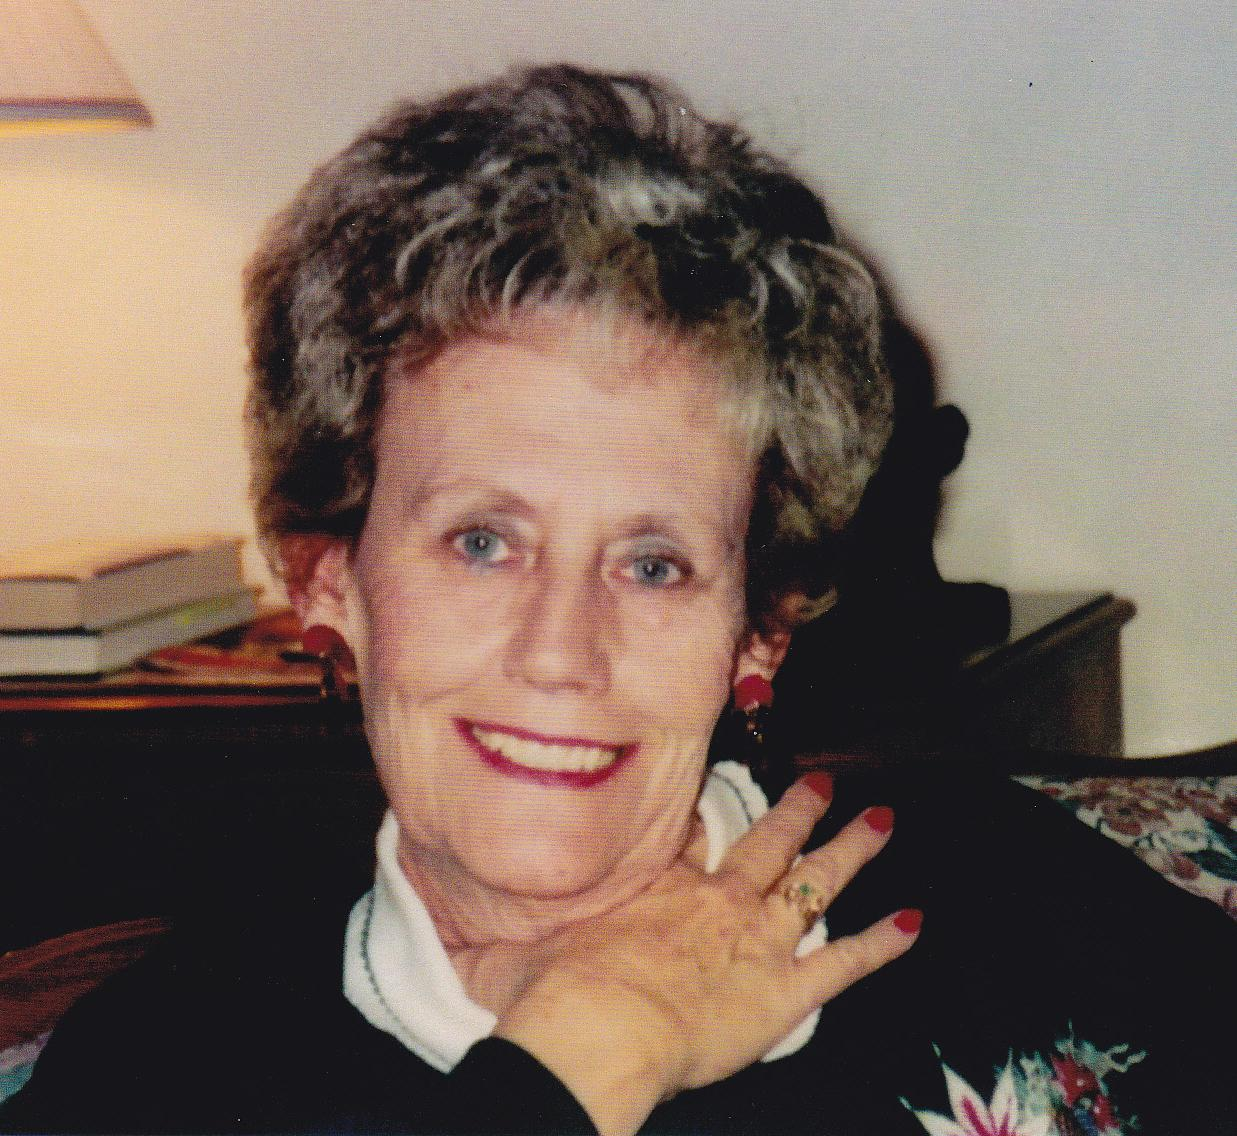 Obituary: Karen Tippel